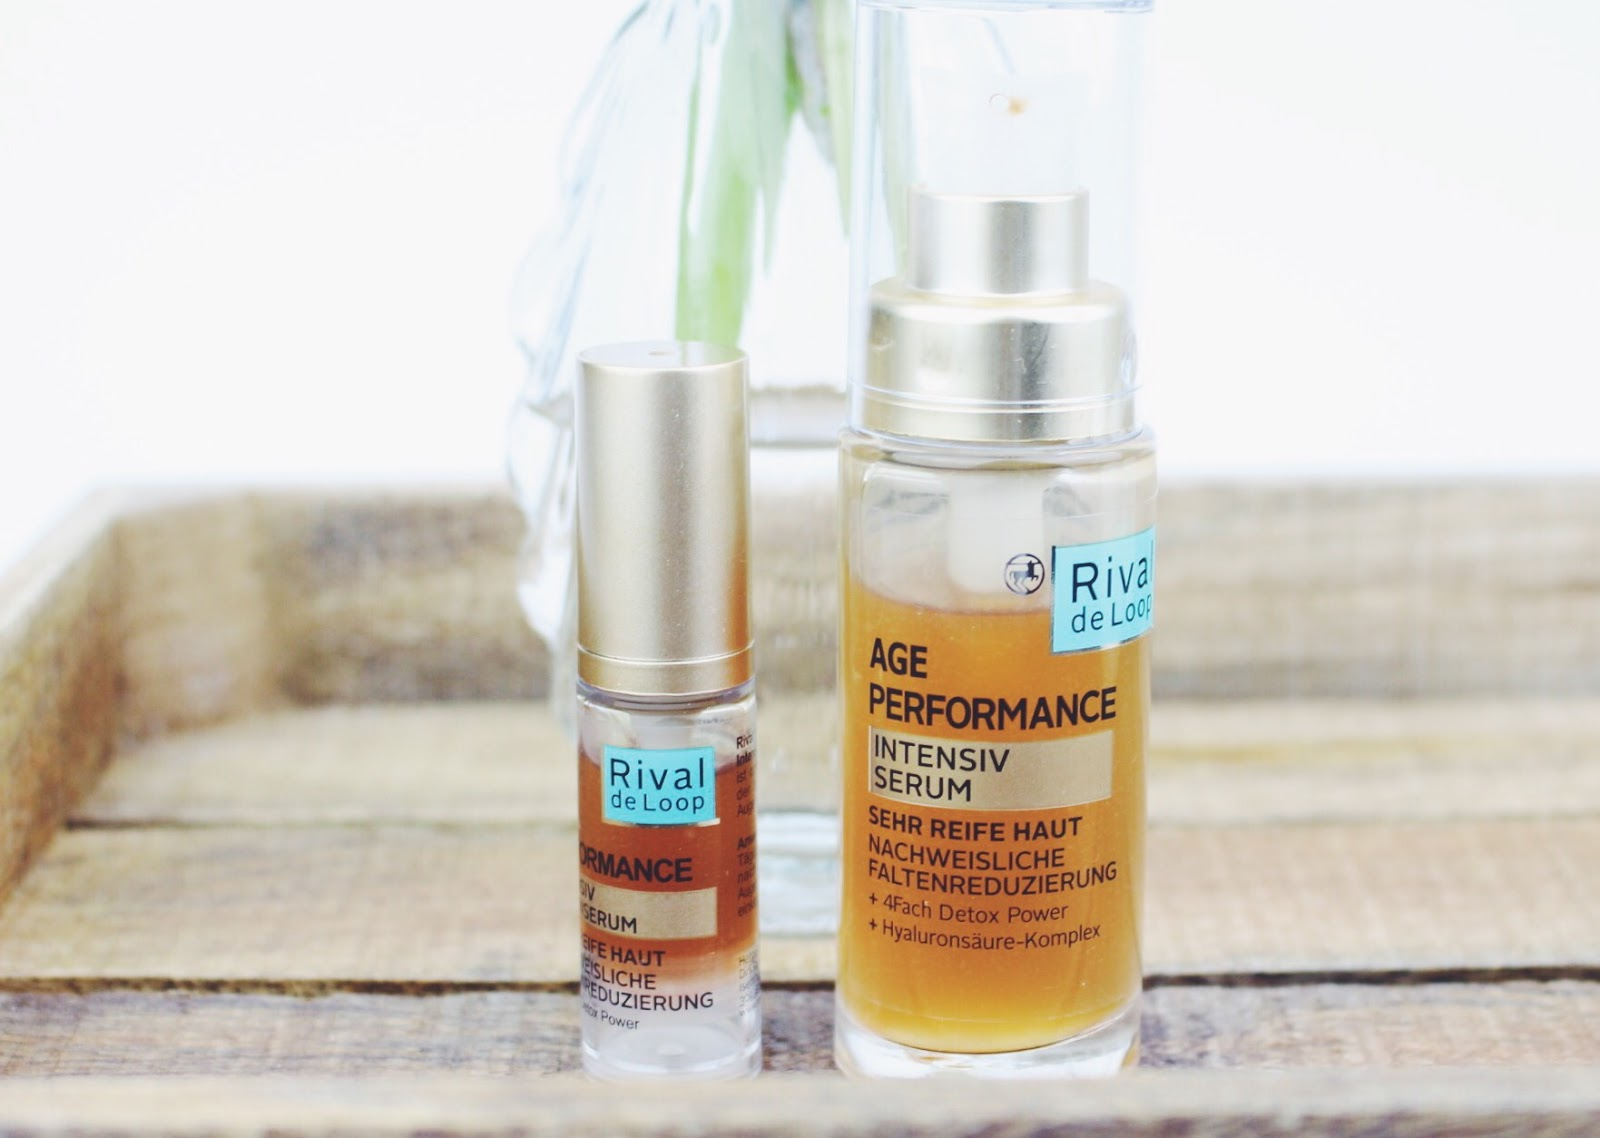 Shoppinator-Shoppination-Review-Rossmann-Rival-de-Loop-Serum-Age-Performance-Intesiv-Serum-Eye-Serum-Hautpflege-Gut-und-Günstig-Shoppitipp-RDL